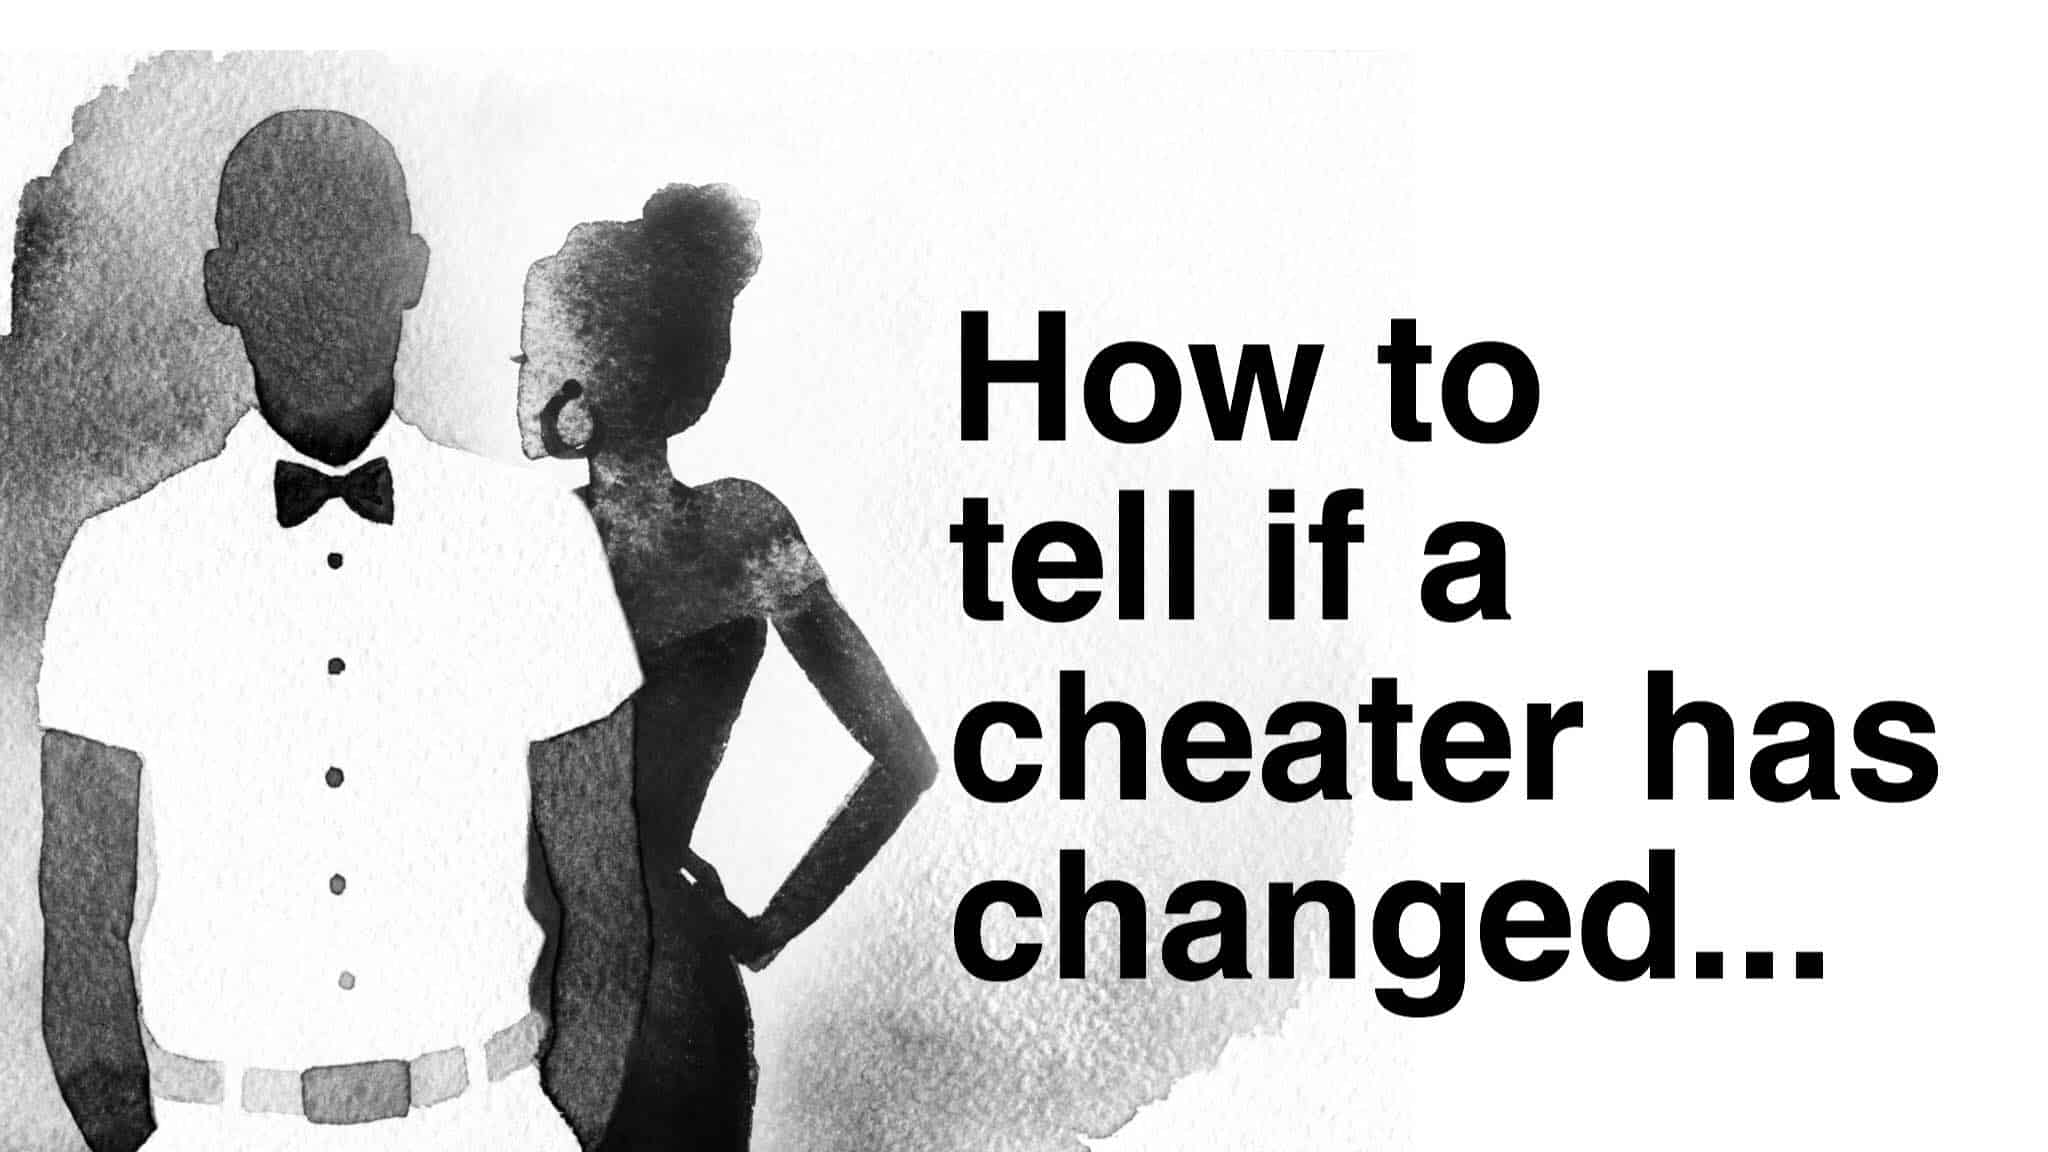 How To Tell If A Cheater Has Changed